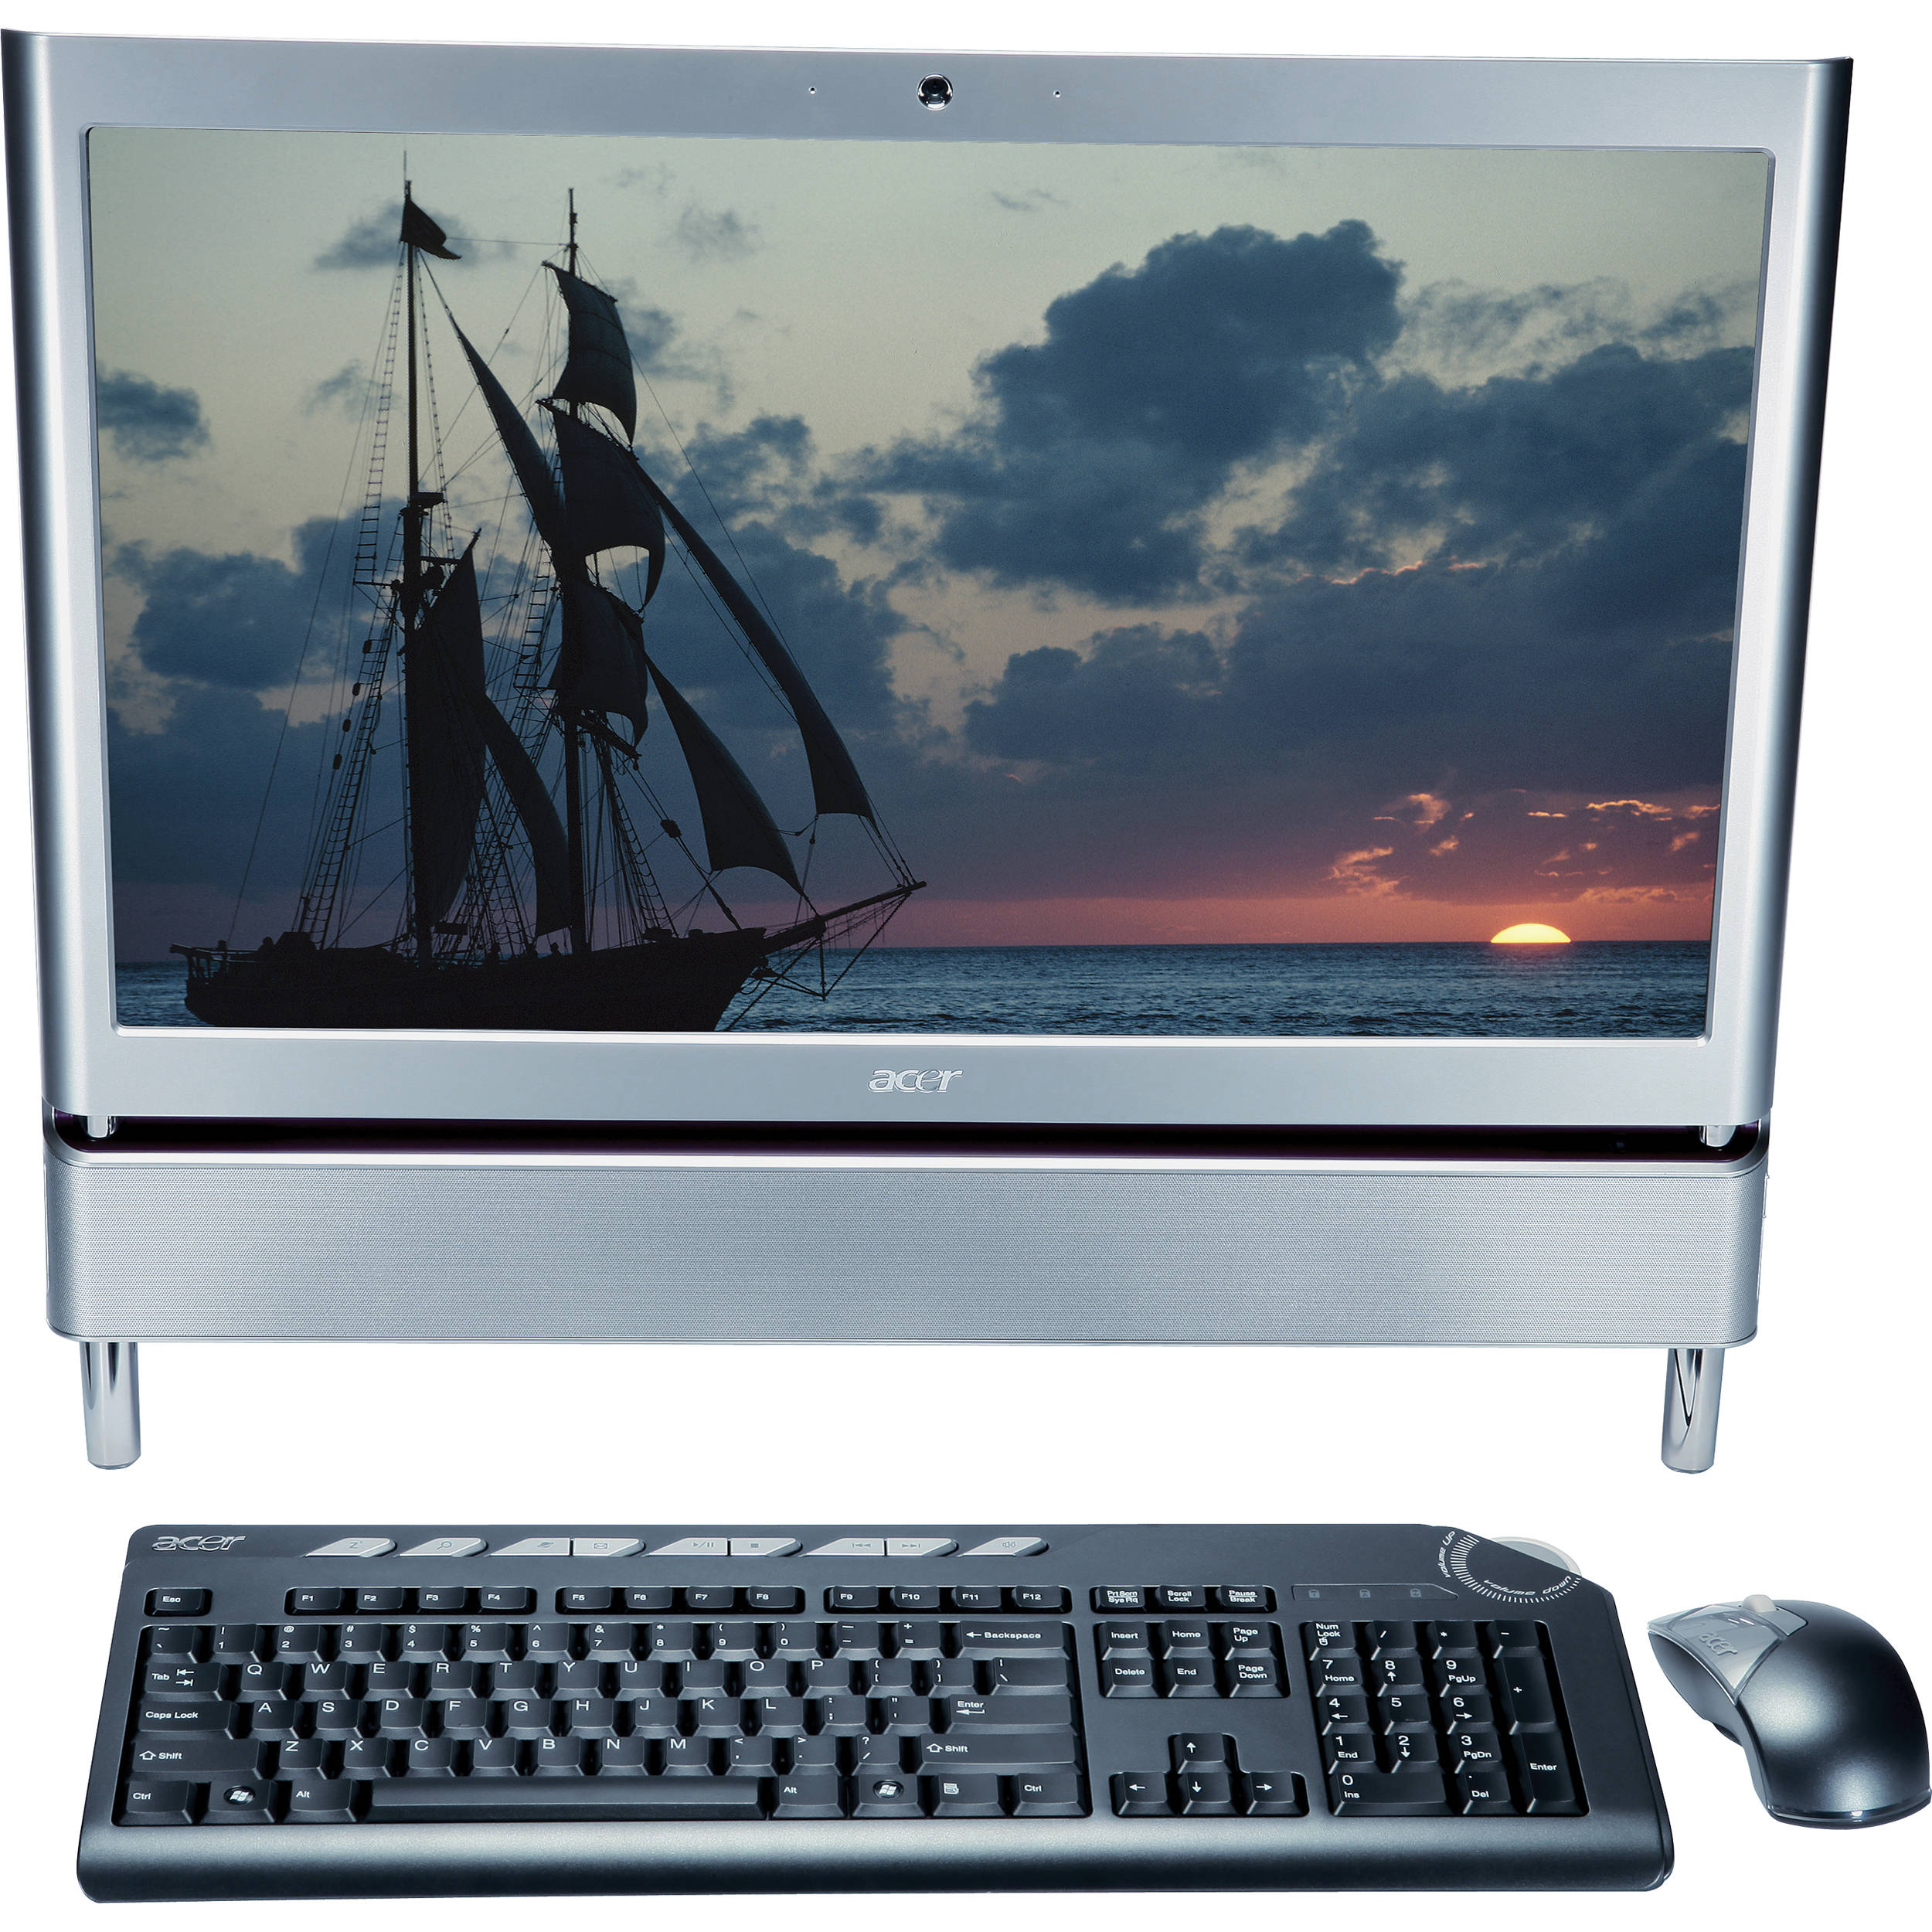 DOWNLOAD DRIVERS: ACER ASPIRE Z5600 ALL-IN-ONE